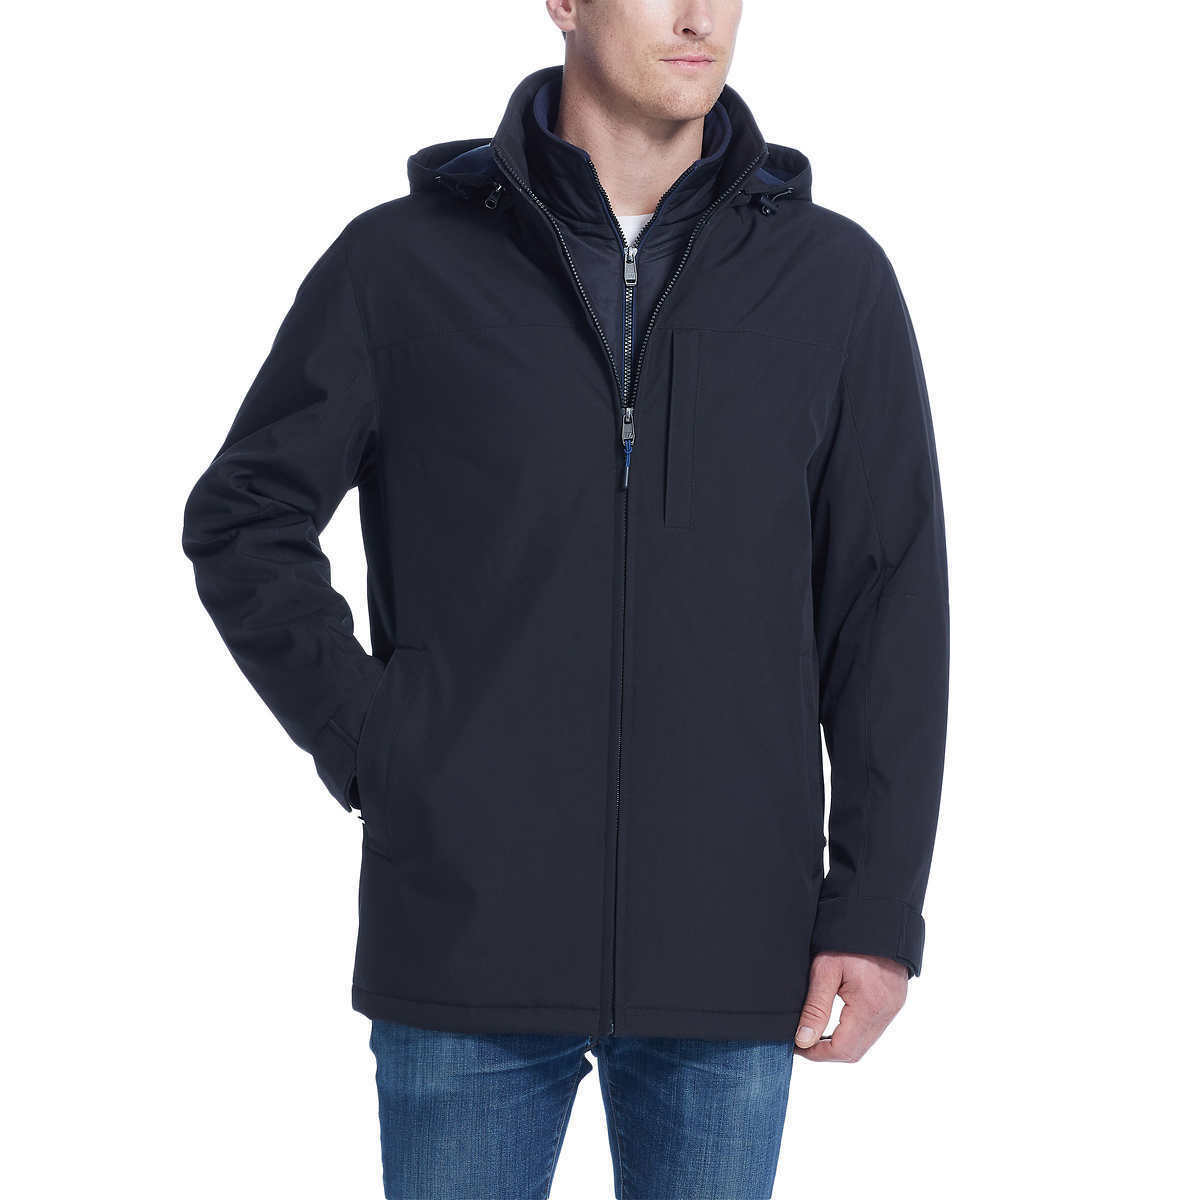 SALE! MEN'S WEATHERPROOF ULTRA STRETCH TECH JACKET VARIETY D